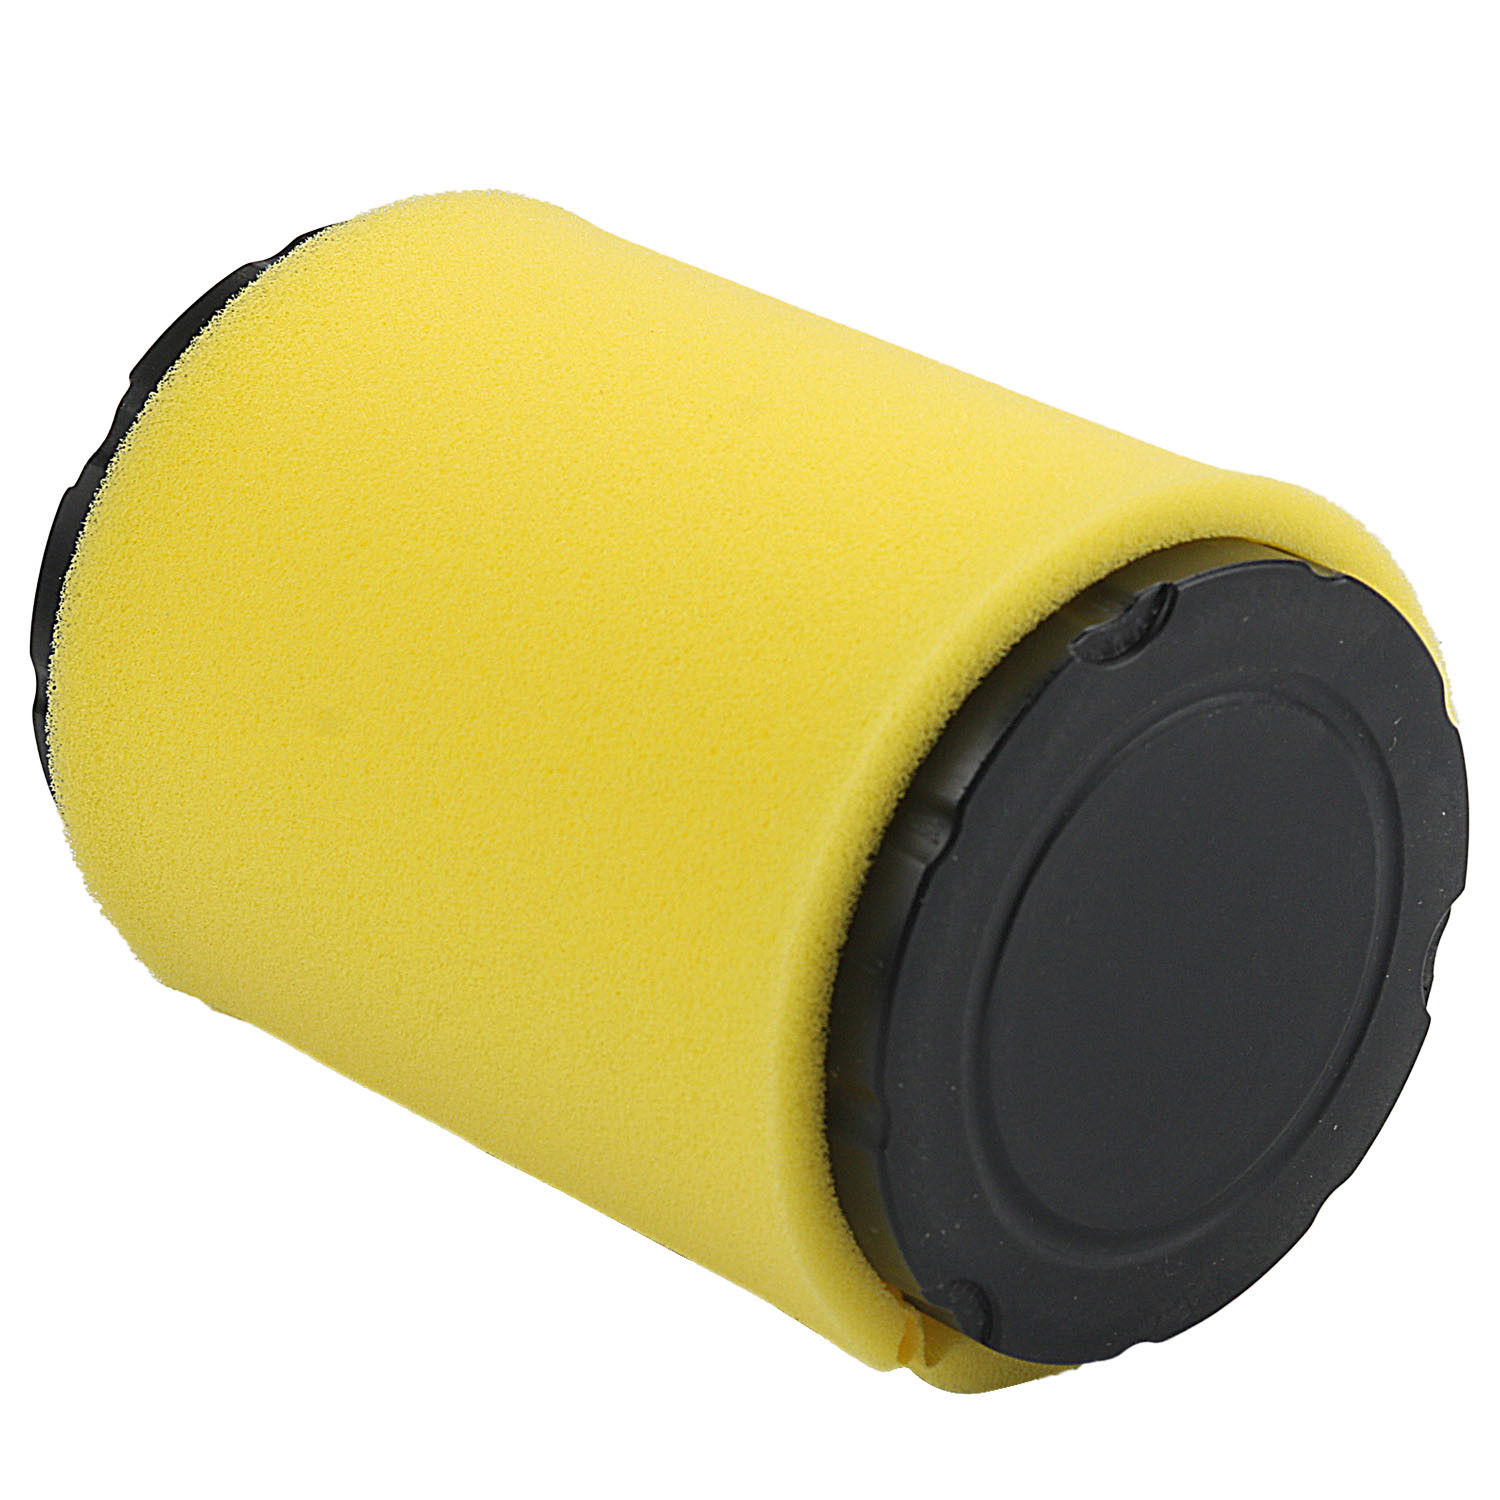 Air Filter For John Deere E100 17 5 Lawn Tractor